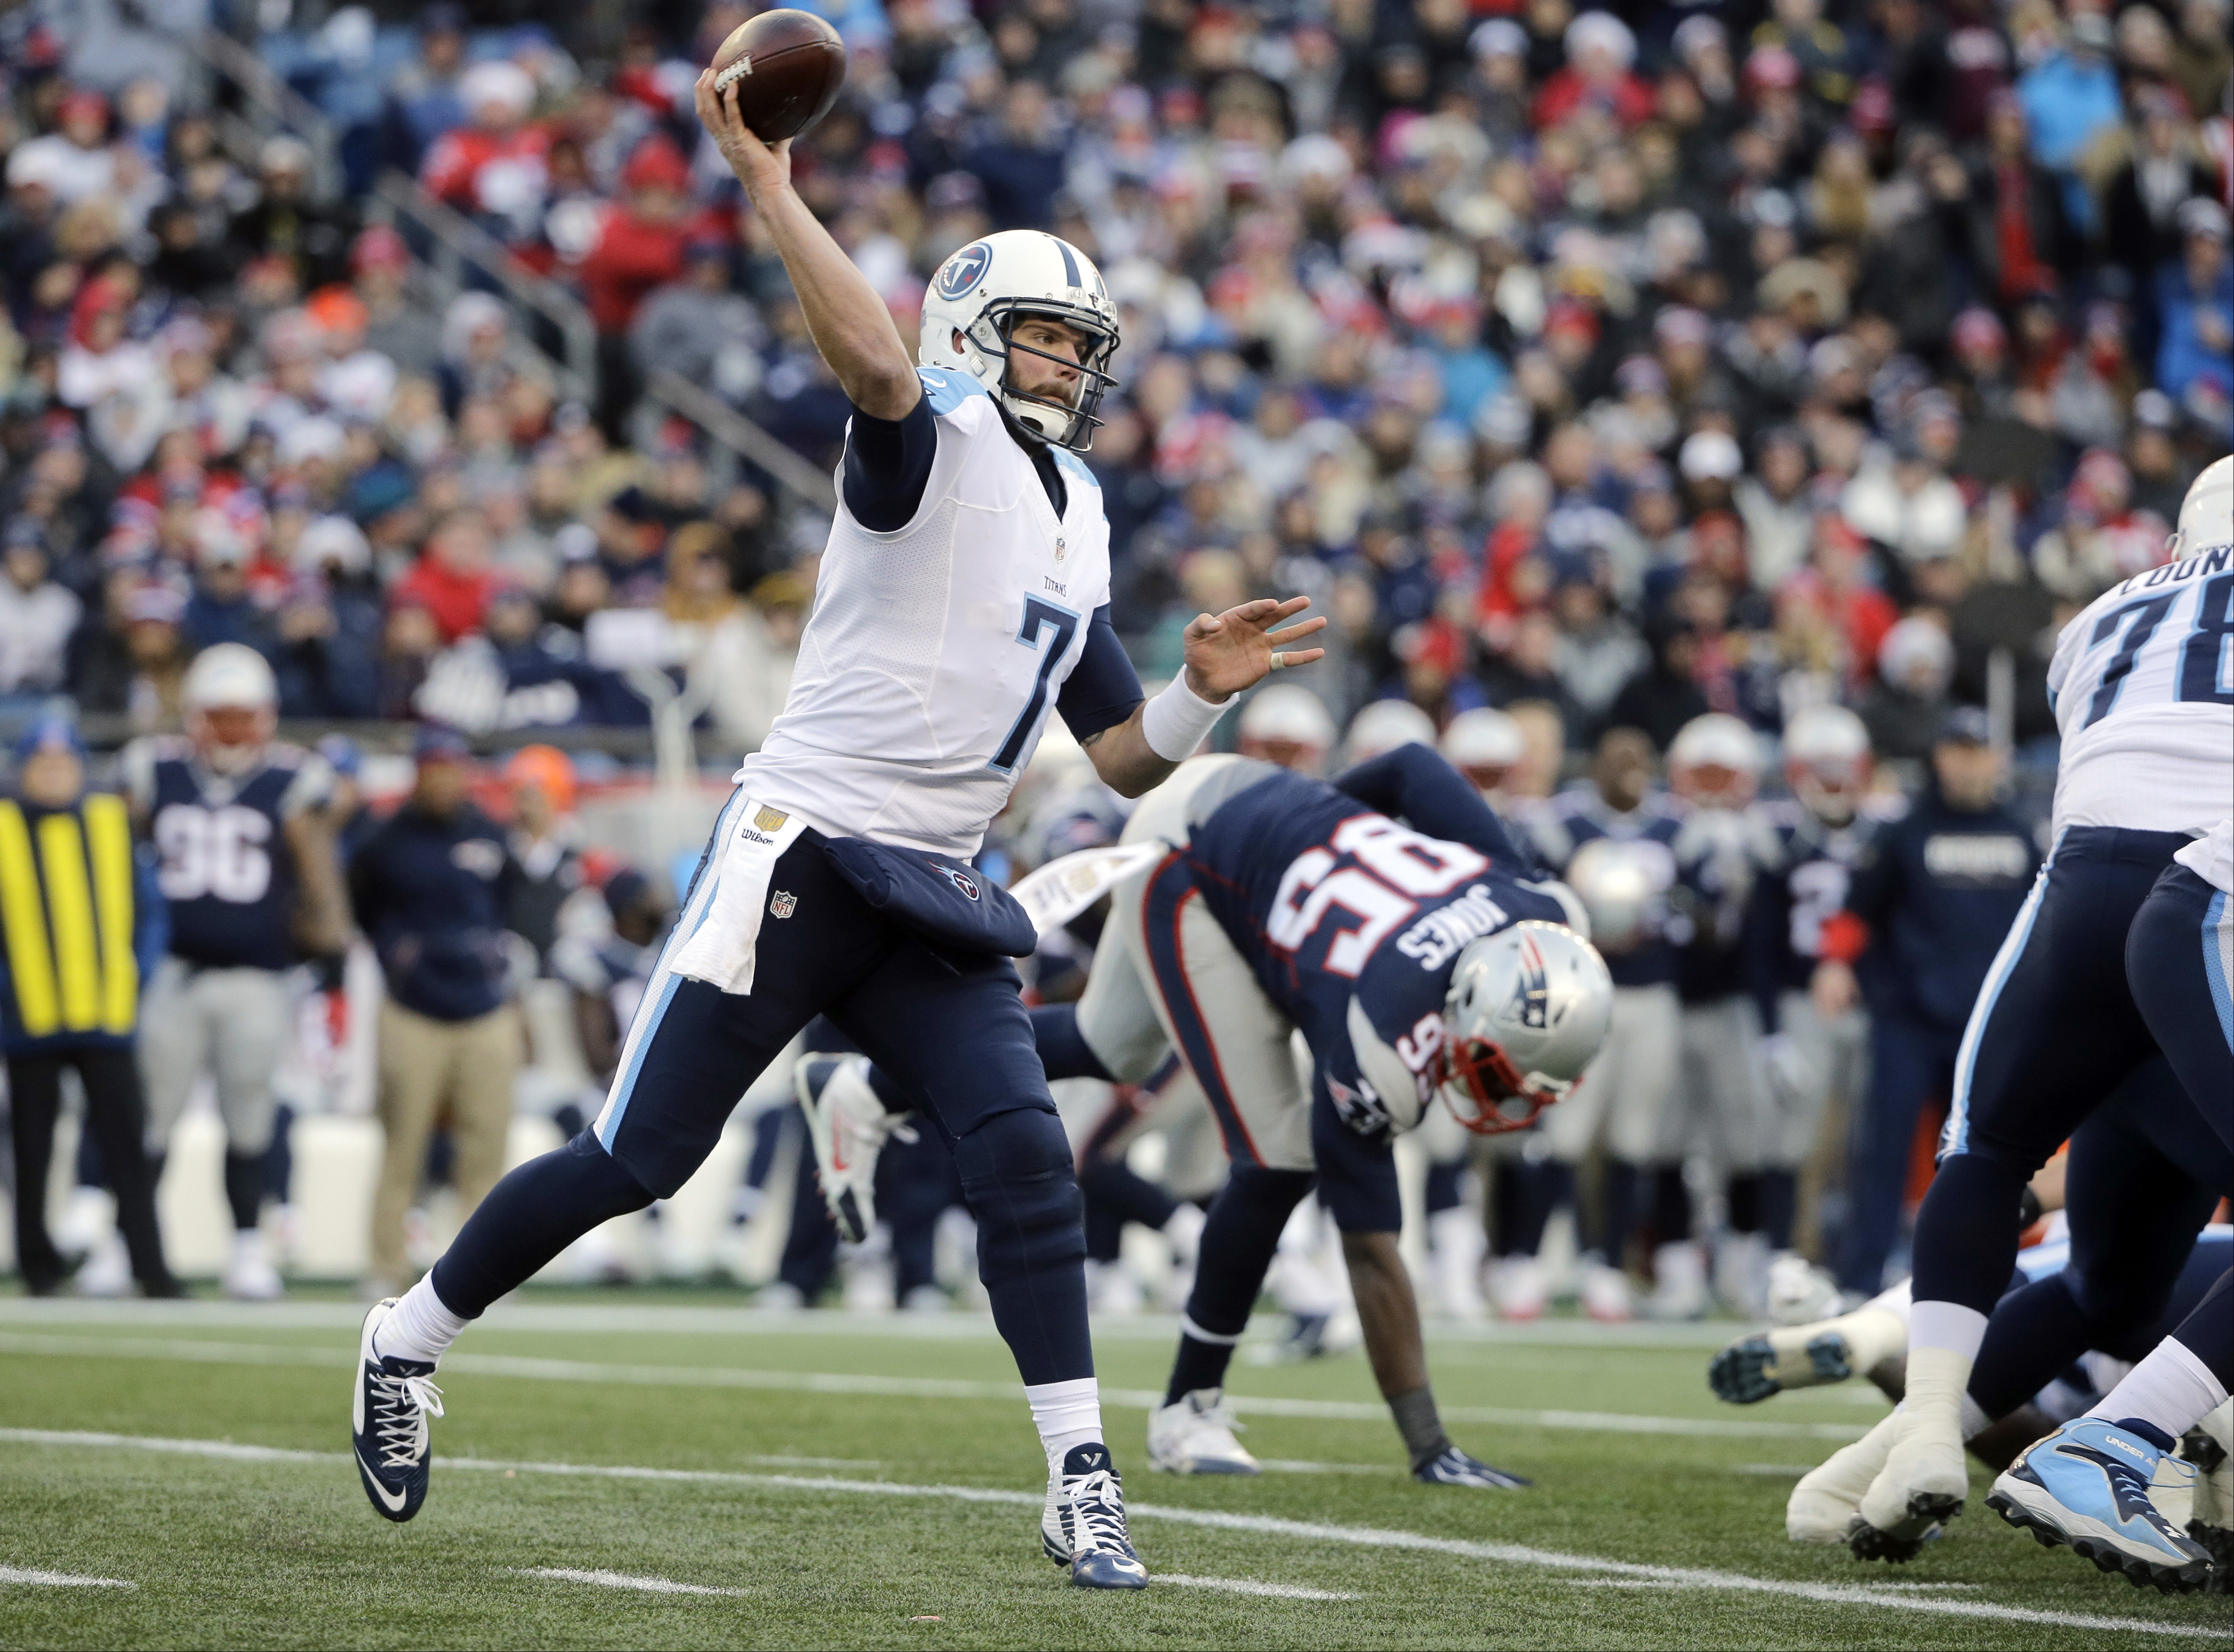 FILE- In this Dec. 20, 2015, file photo, Tennessee Titans quarterback Zach Mettenberger (7) passes against the New England Patriots during an NFL football game in Foxborough, Mass. The Titans play the Indianapolis Colts on Sunday, Jan. 3. (AP Photo/Steven